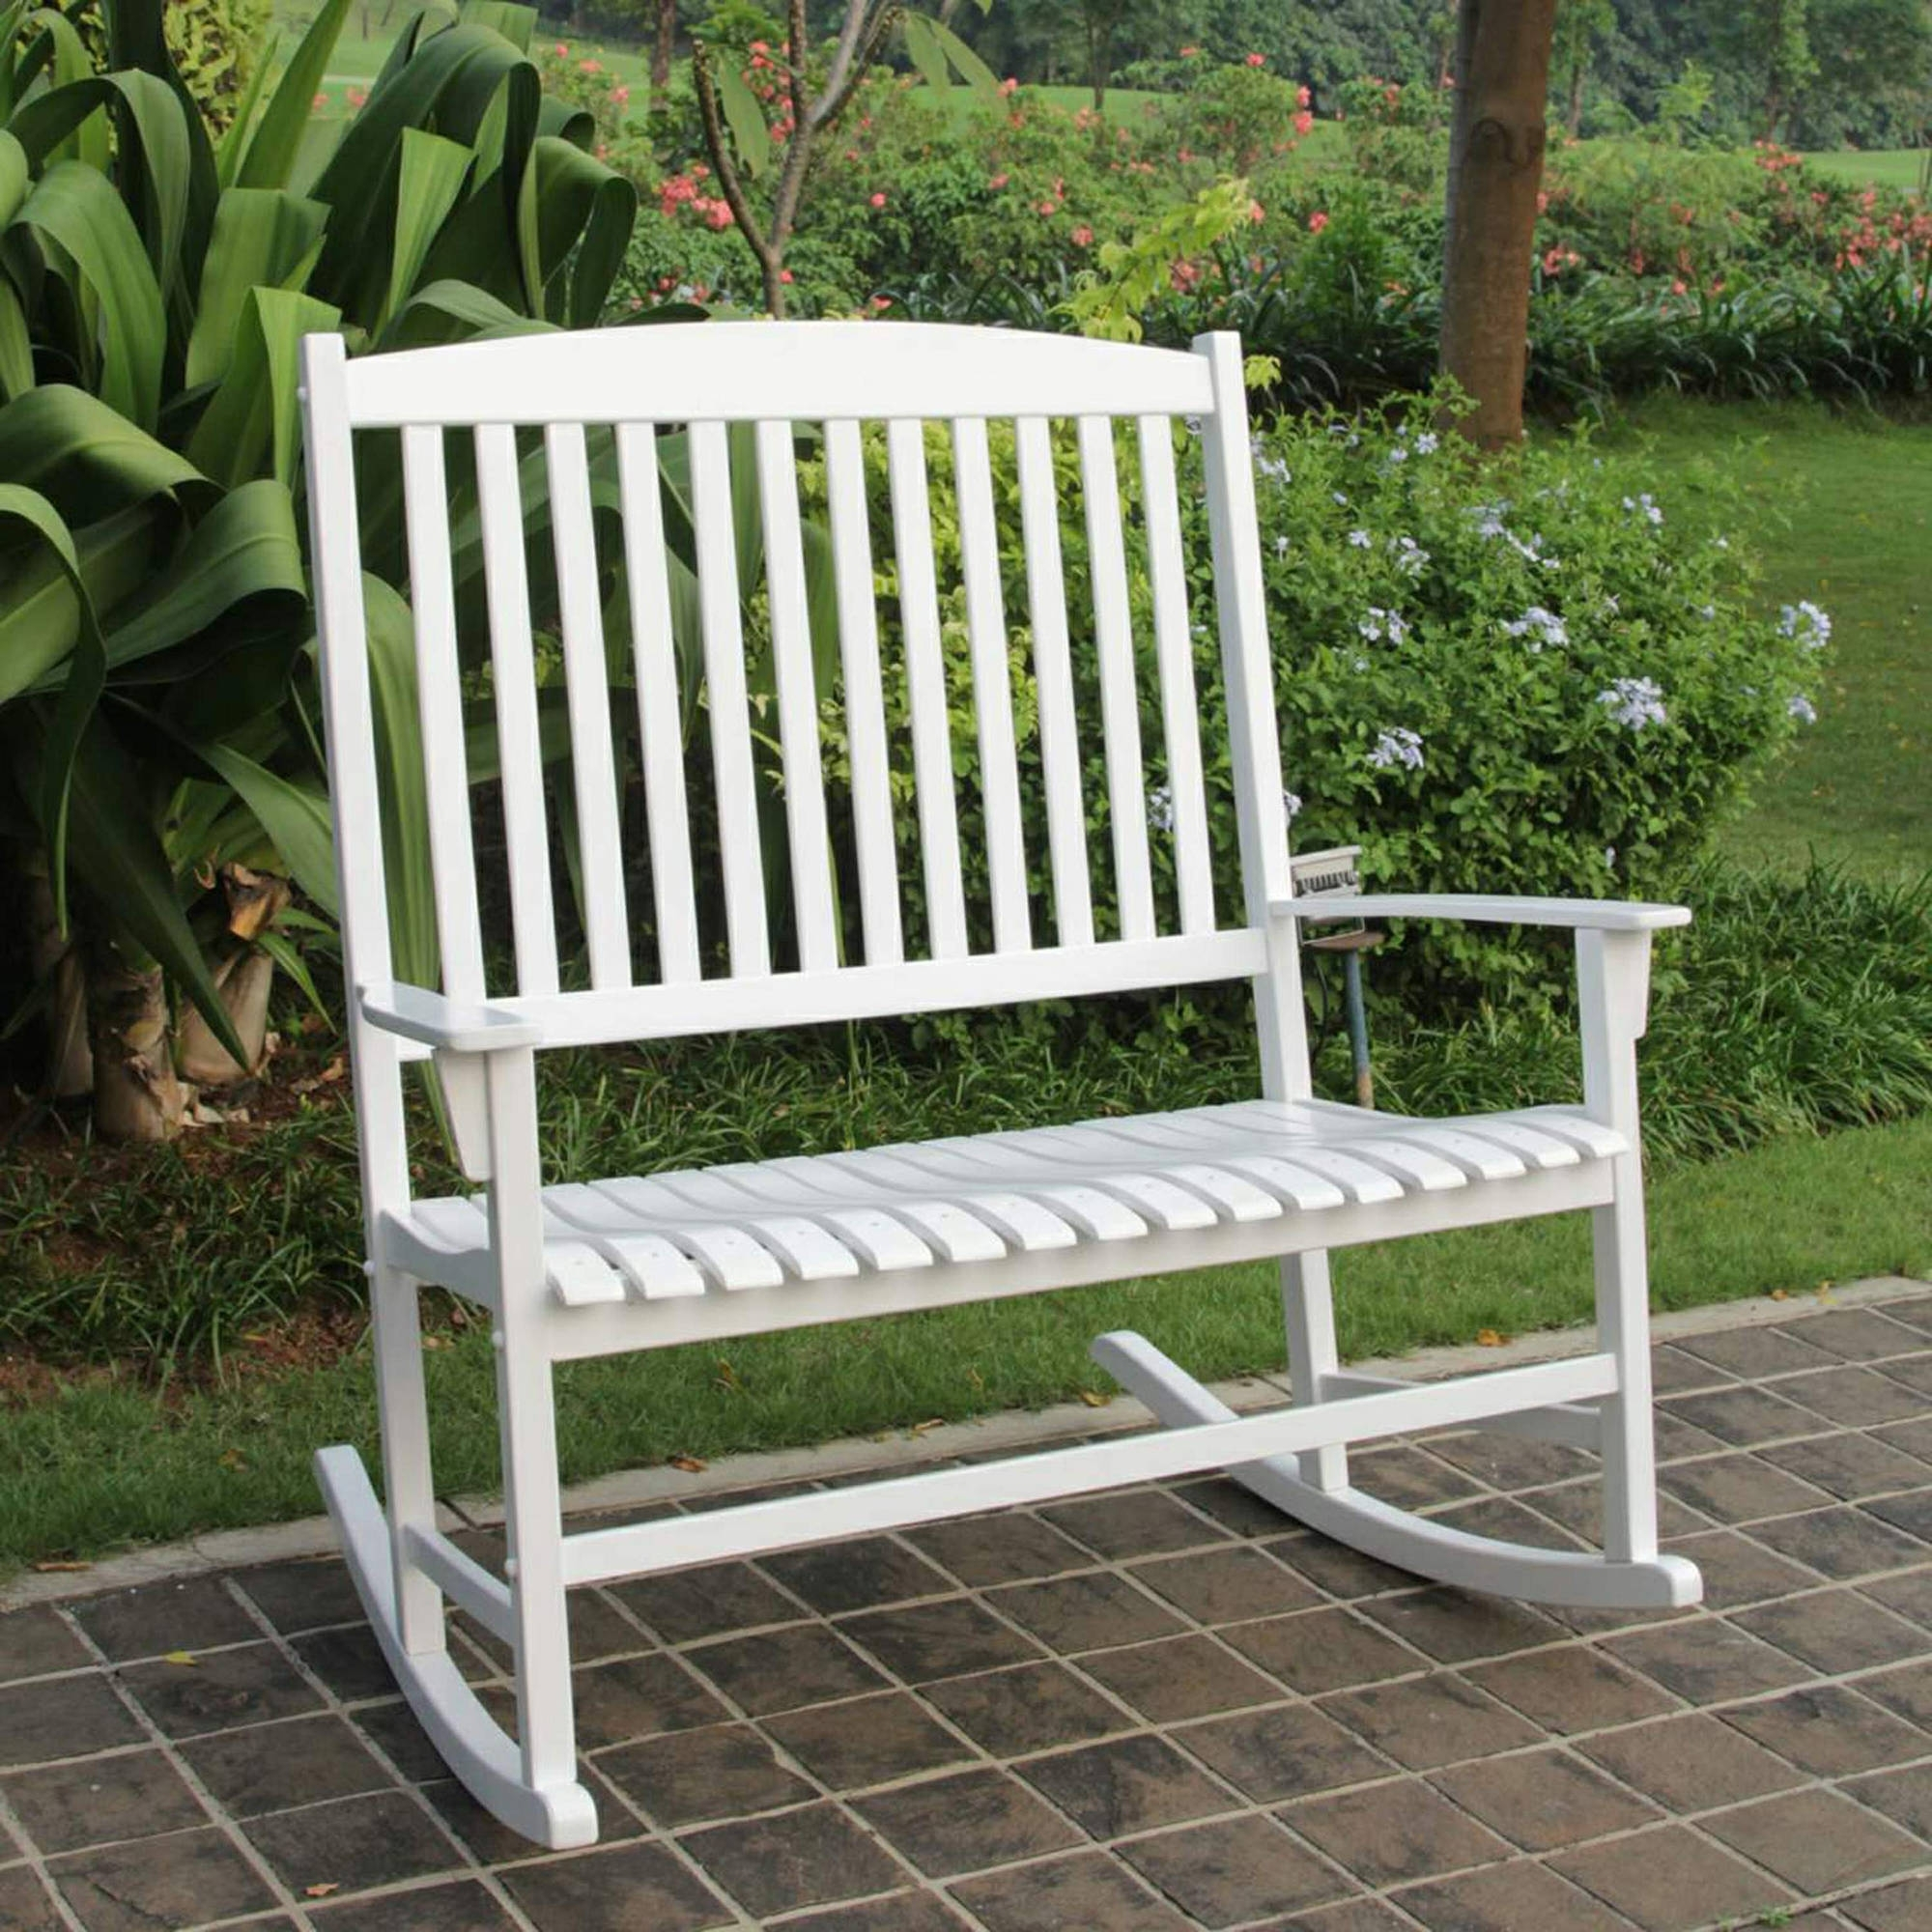 Well Known Patio Loveseat White Hardwood Outdoor Rocking Chair For 2 With Regard To Wooden Patio Rocking Chairs (View 13 of 20)